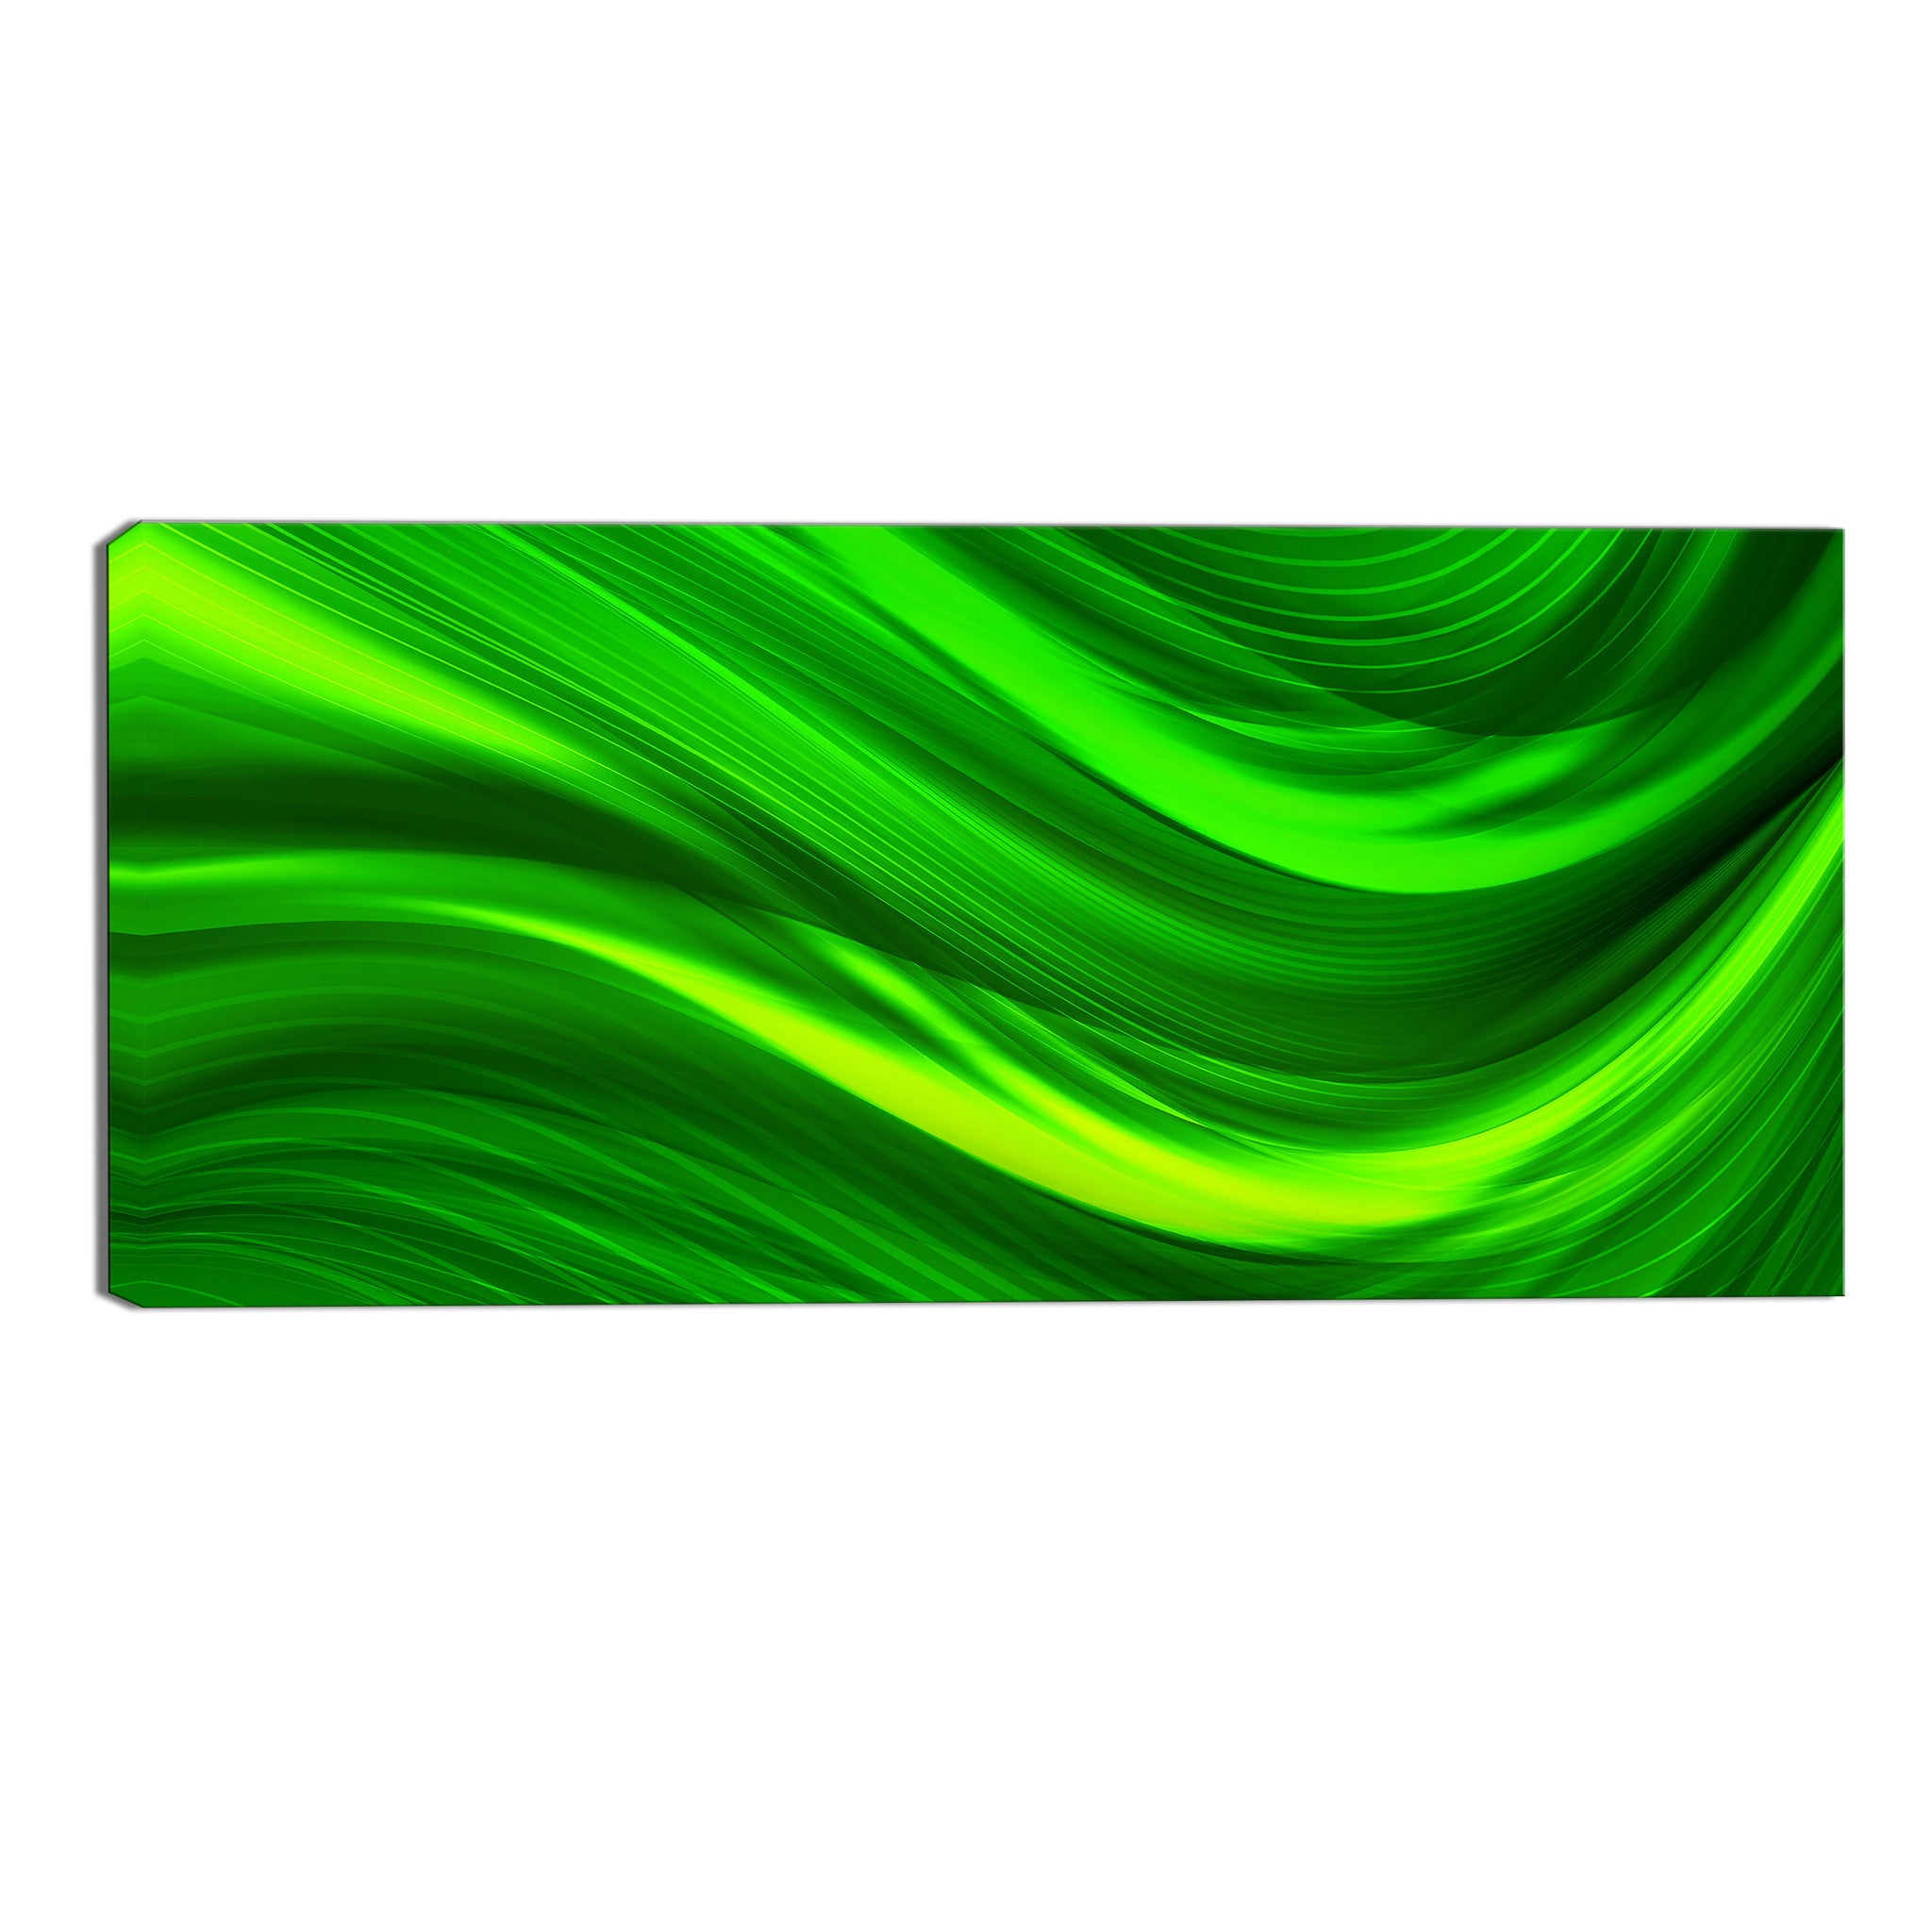 Green Streaks Canvas Abstract Wall Art Print